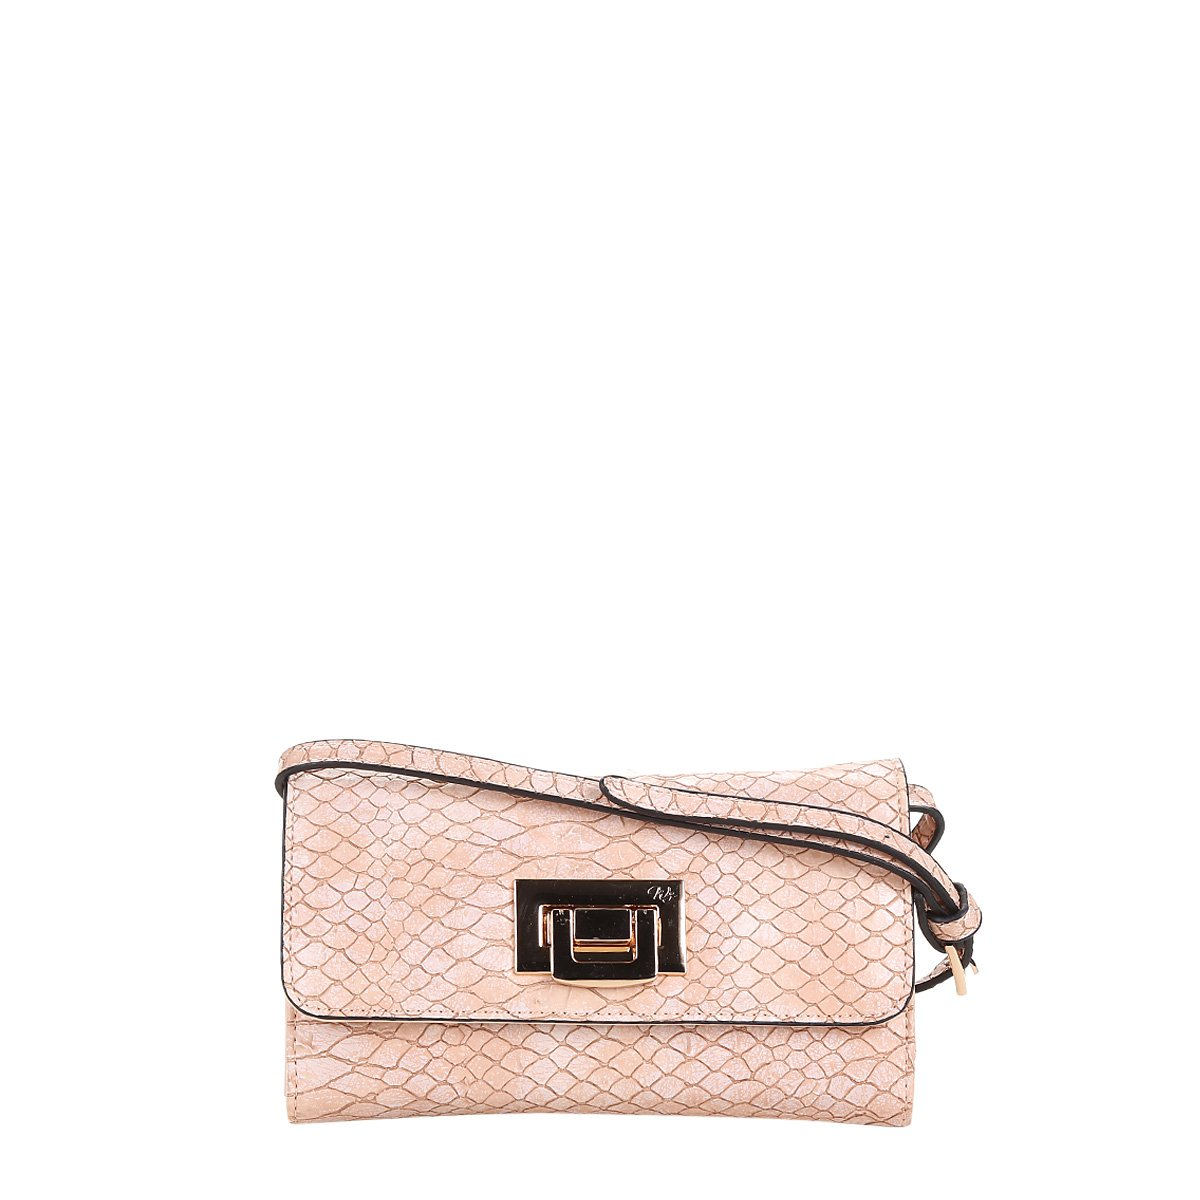 040731214 Bolsa WJ Mini Bag Crossbody Croco Feminina